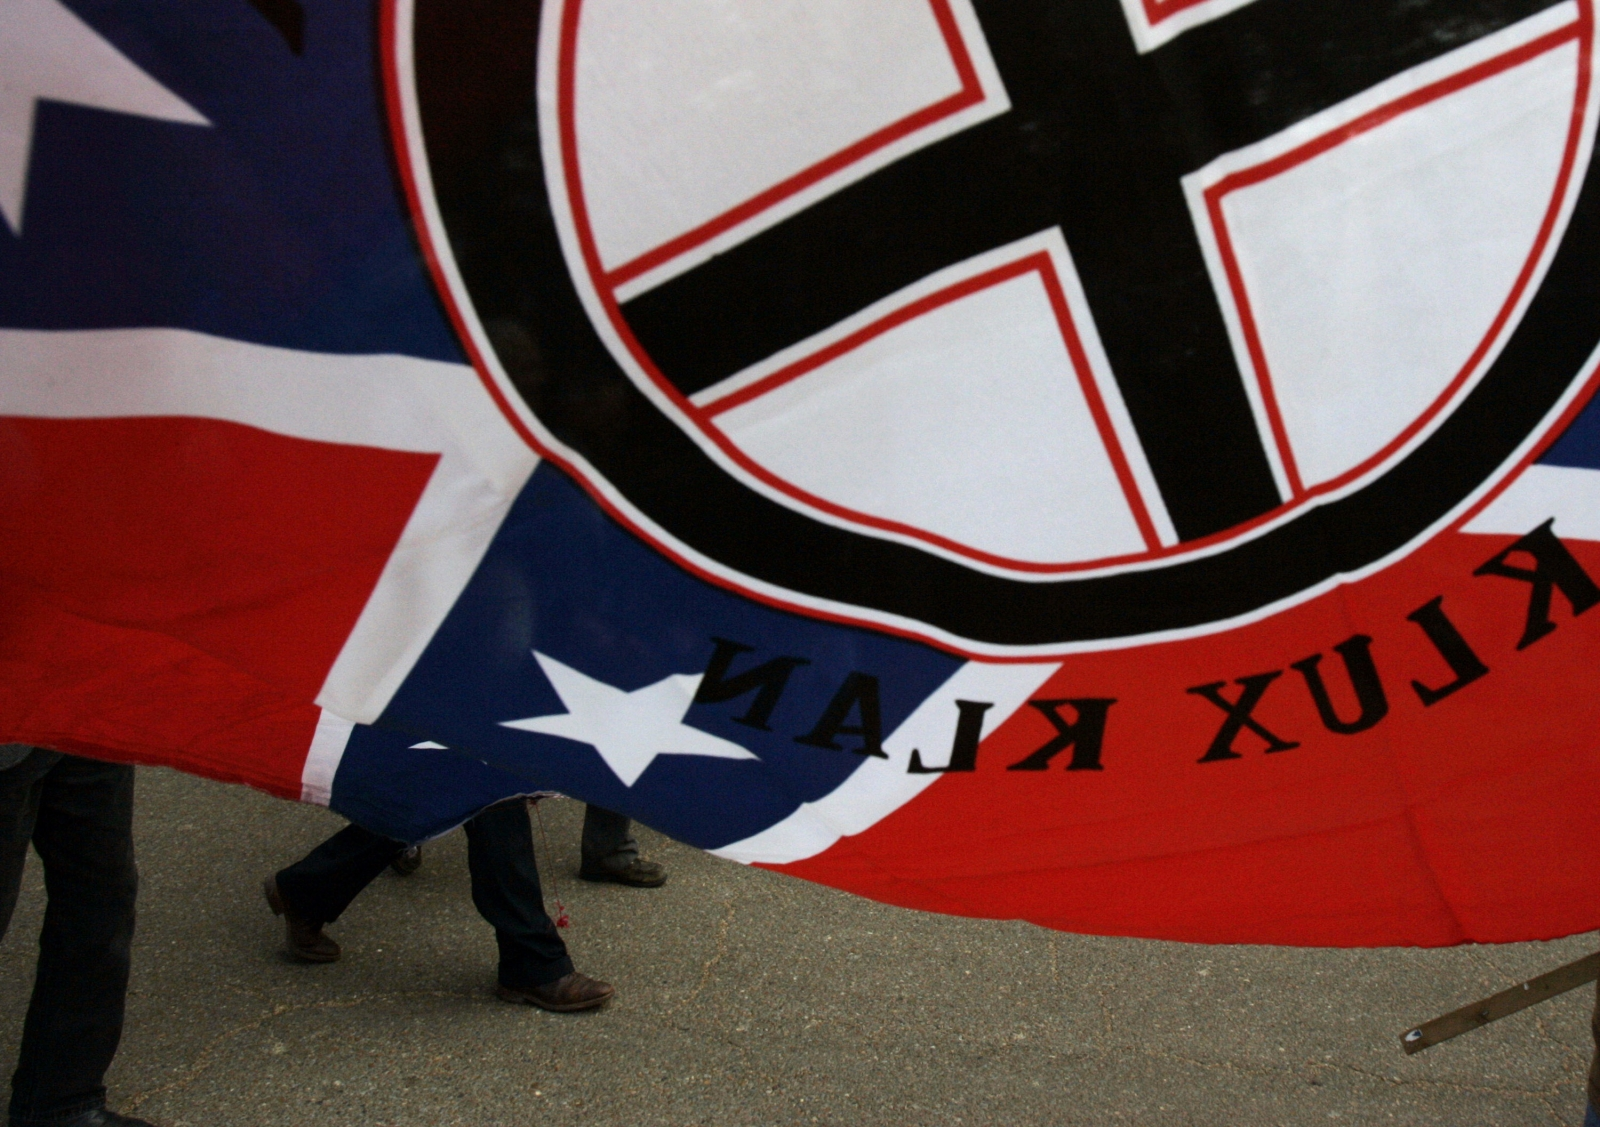 A white extremist rally in Louisiana